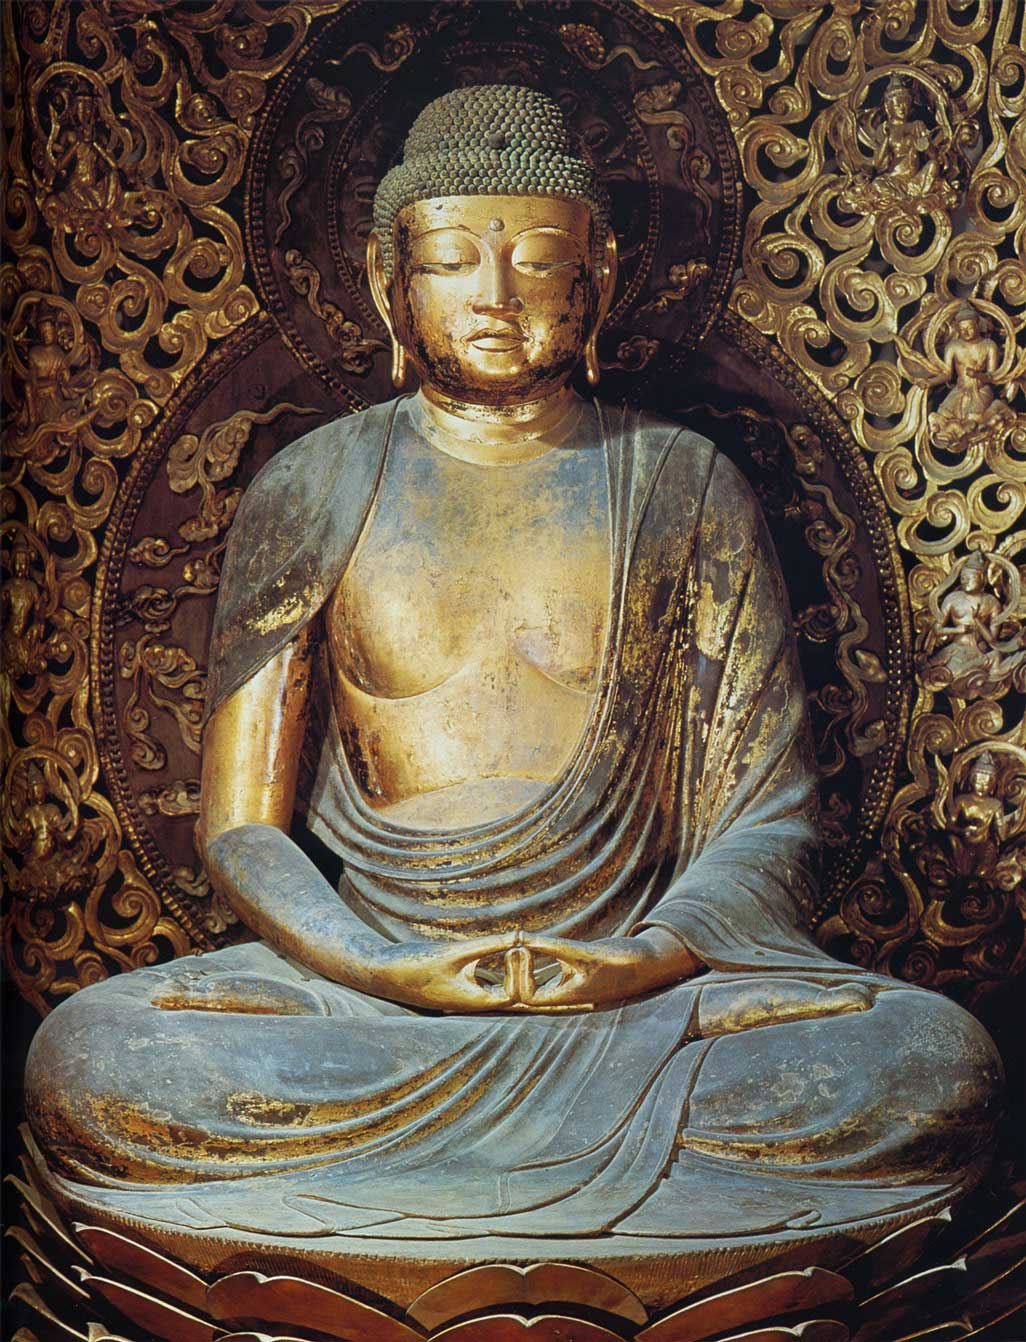 During my time in Japan I have seen many beautiful wooden statues in Temples and Museums. The craftsmanship is impressive. Mostly you are not allowed to take photos of these objects of workshop. this image of the Amida Nyorai, which is over 2 metres tall and covered with gold leaf, is from Wikipedia commons. It can be found in real life in Byodo-in Temple in Uji, near Kyot.